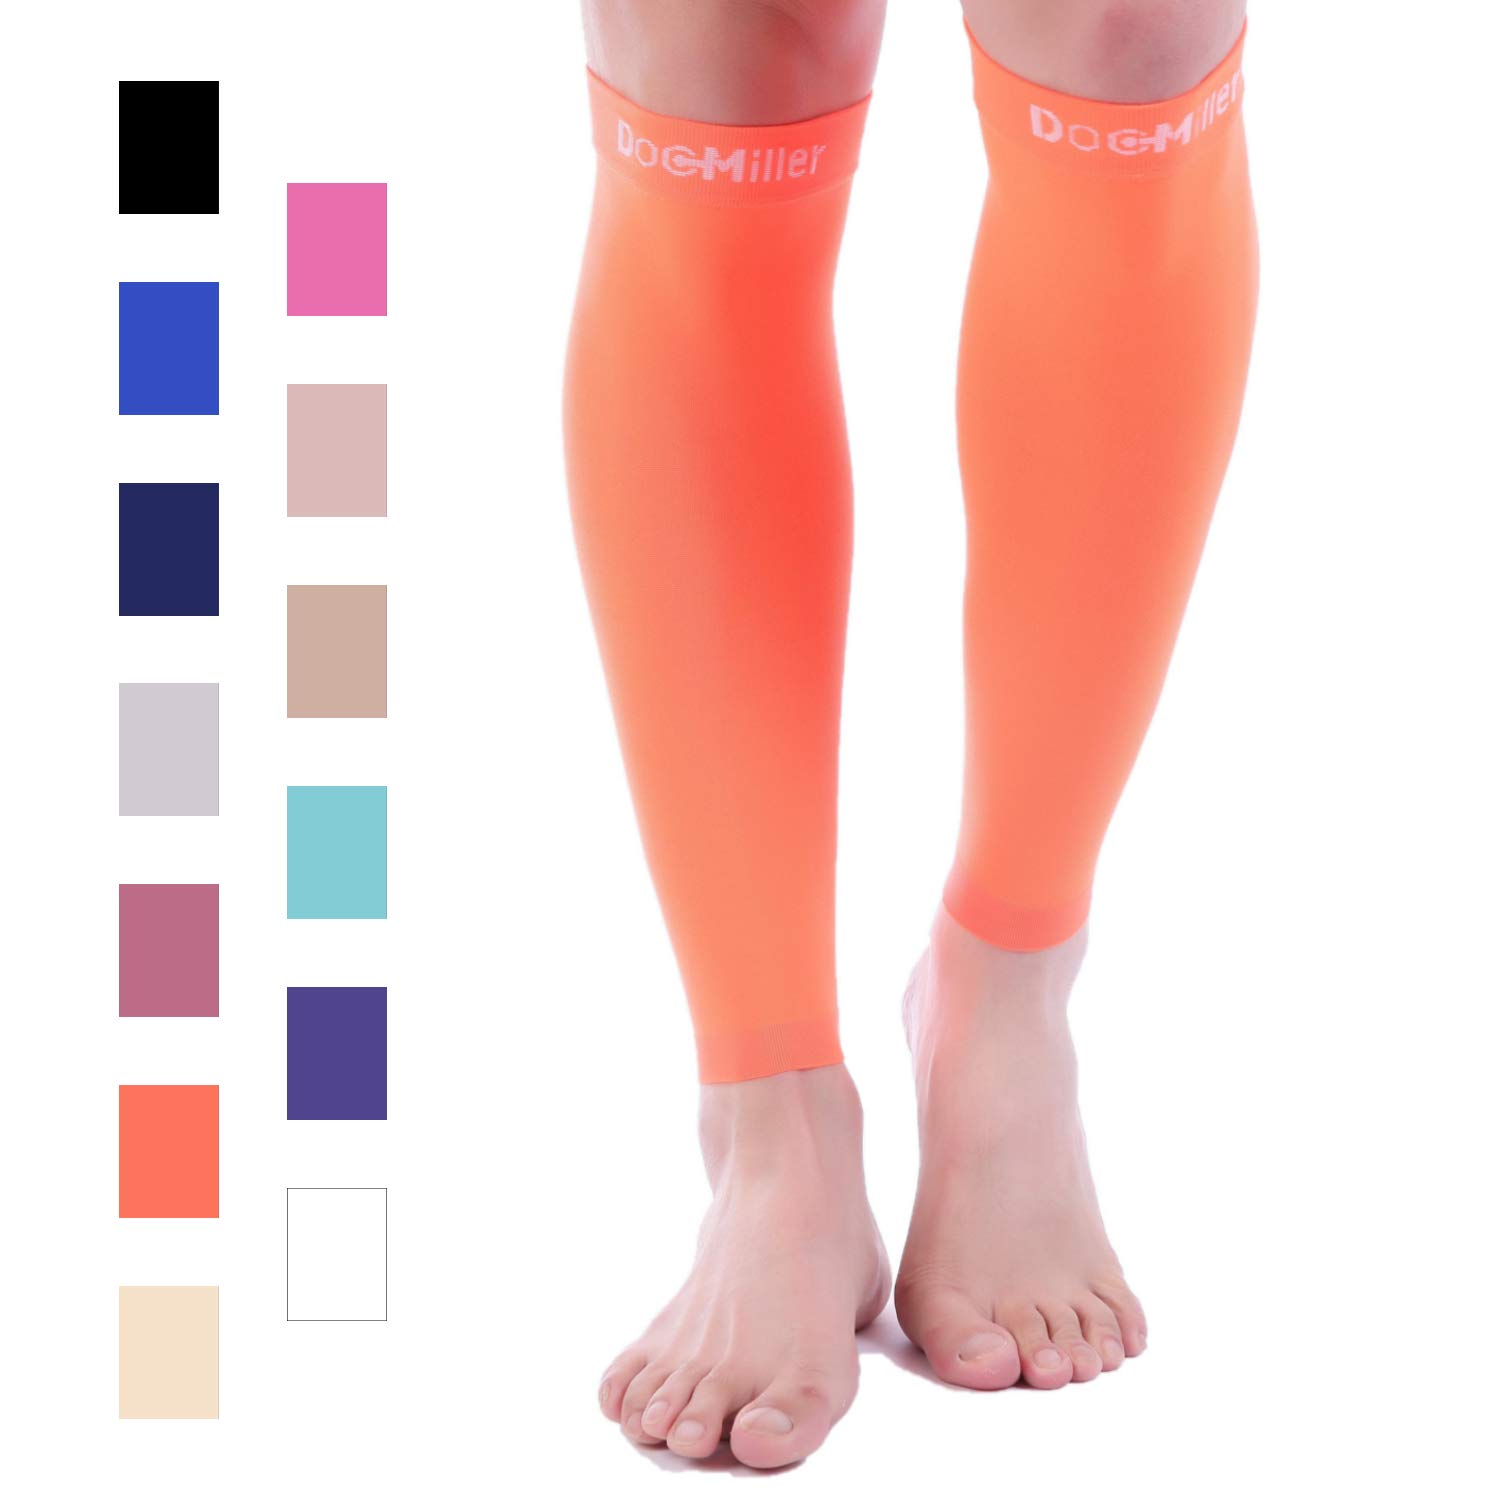 Doc Miller Premium Calf Compression Sleeve 1 Pair 20-30mmHg Strong Calf Support Graduated Pressure for Sports Running Muscle Recovery Shin Splints Varicose Veins (Orange, 4X-Large) by Doc Miller